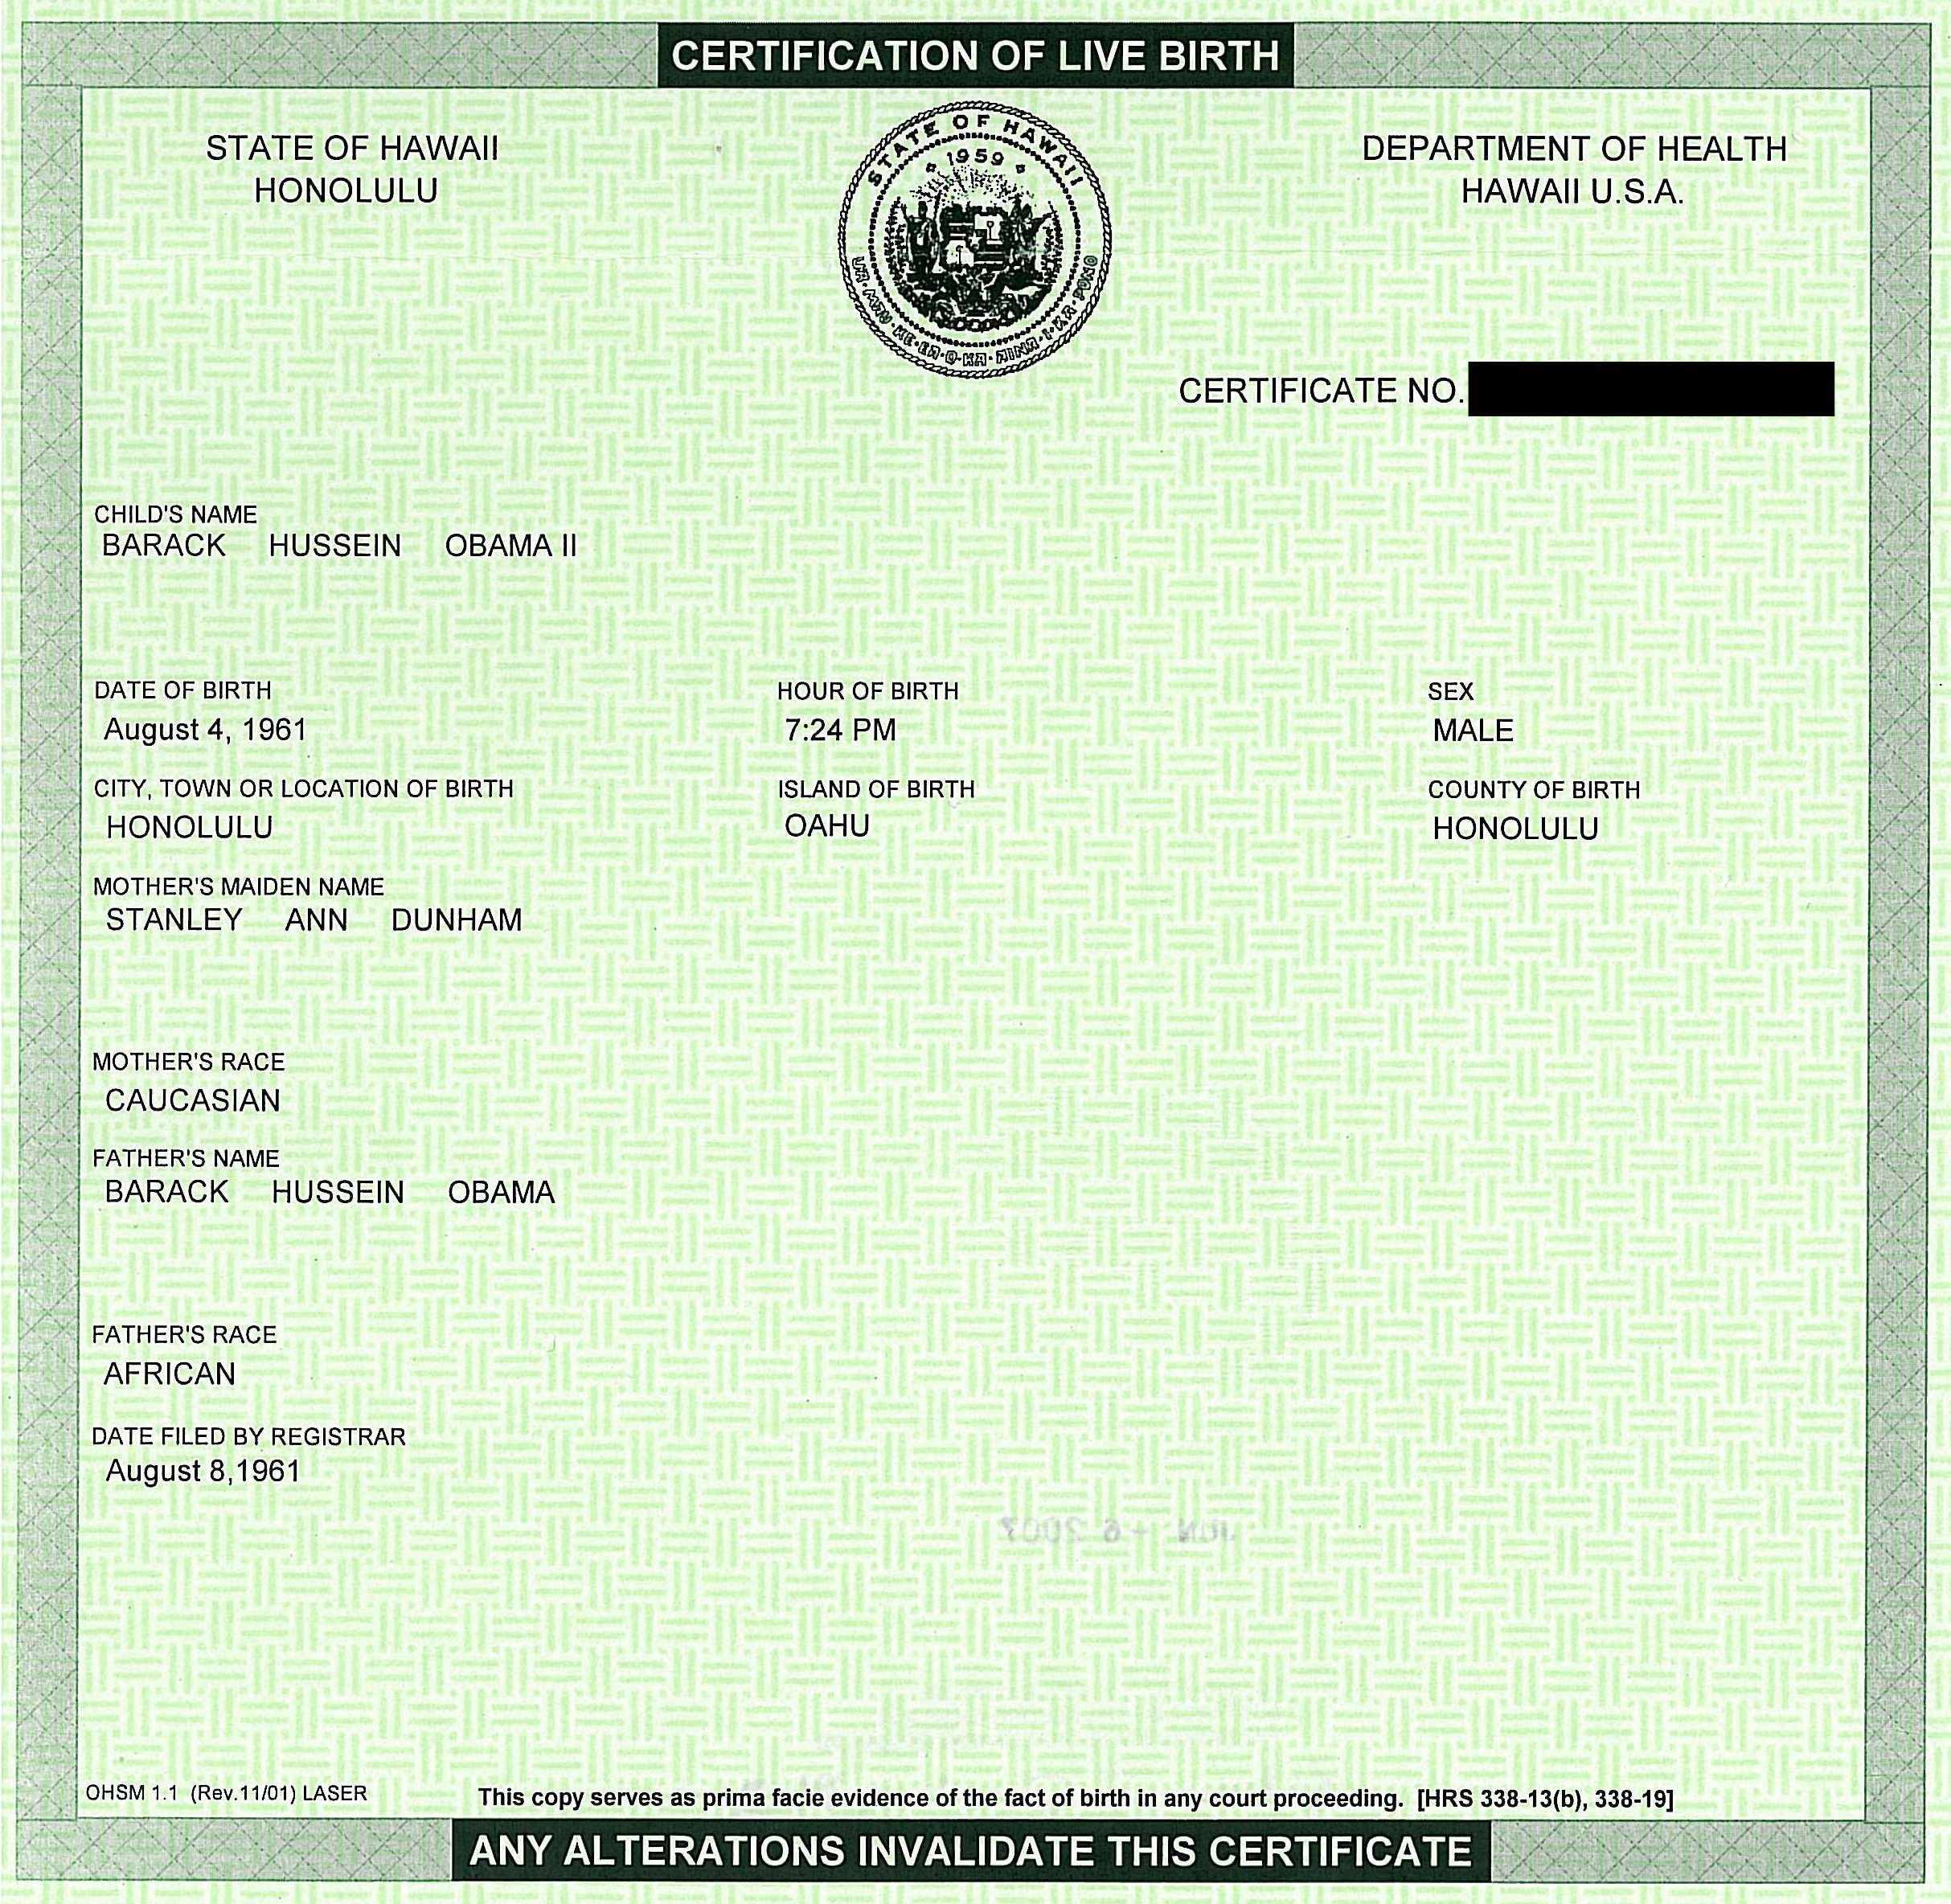 Barack Obama Birth Certificate Image Tampering Analysis